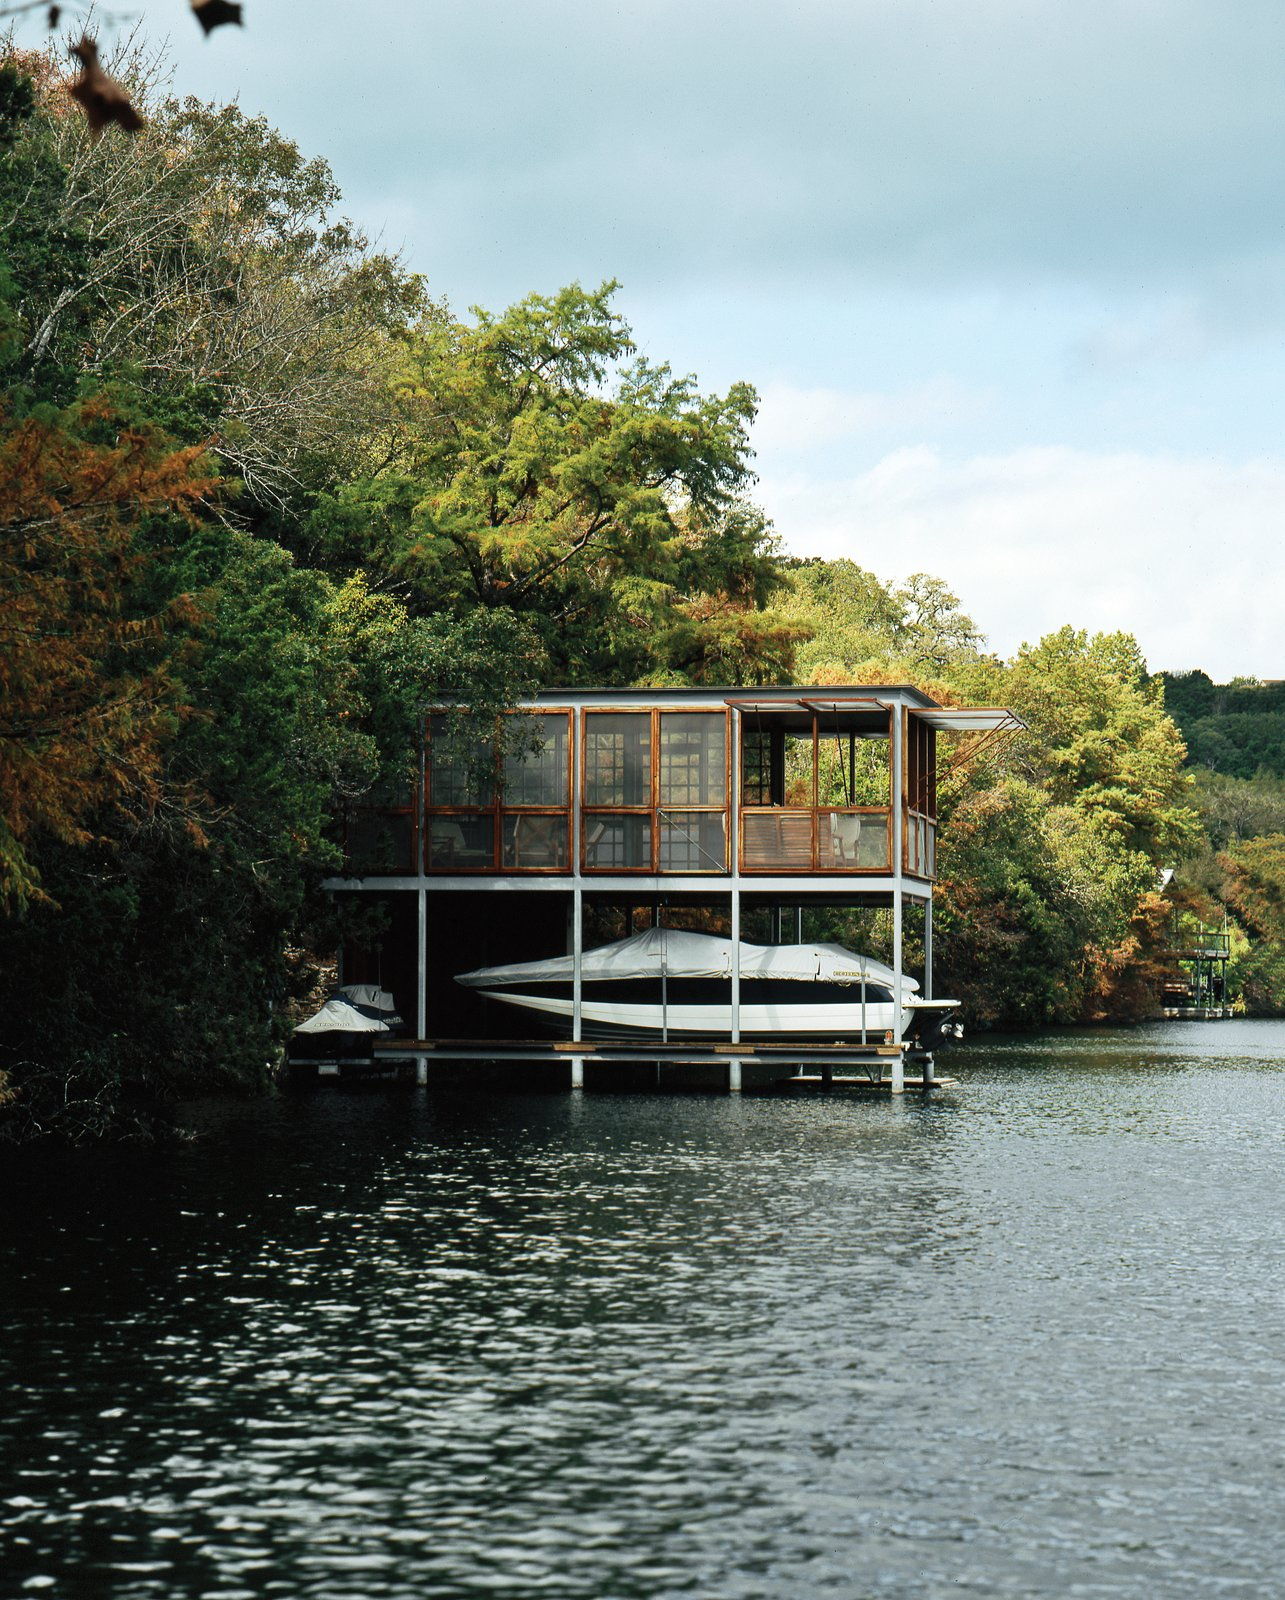 Prefab home collection of 153 photos by dwell dwell - Floating prefabricated home ...